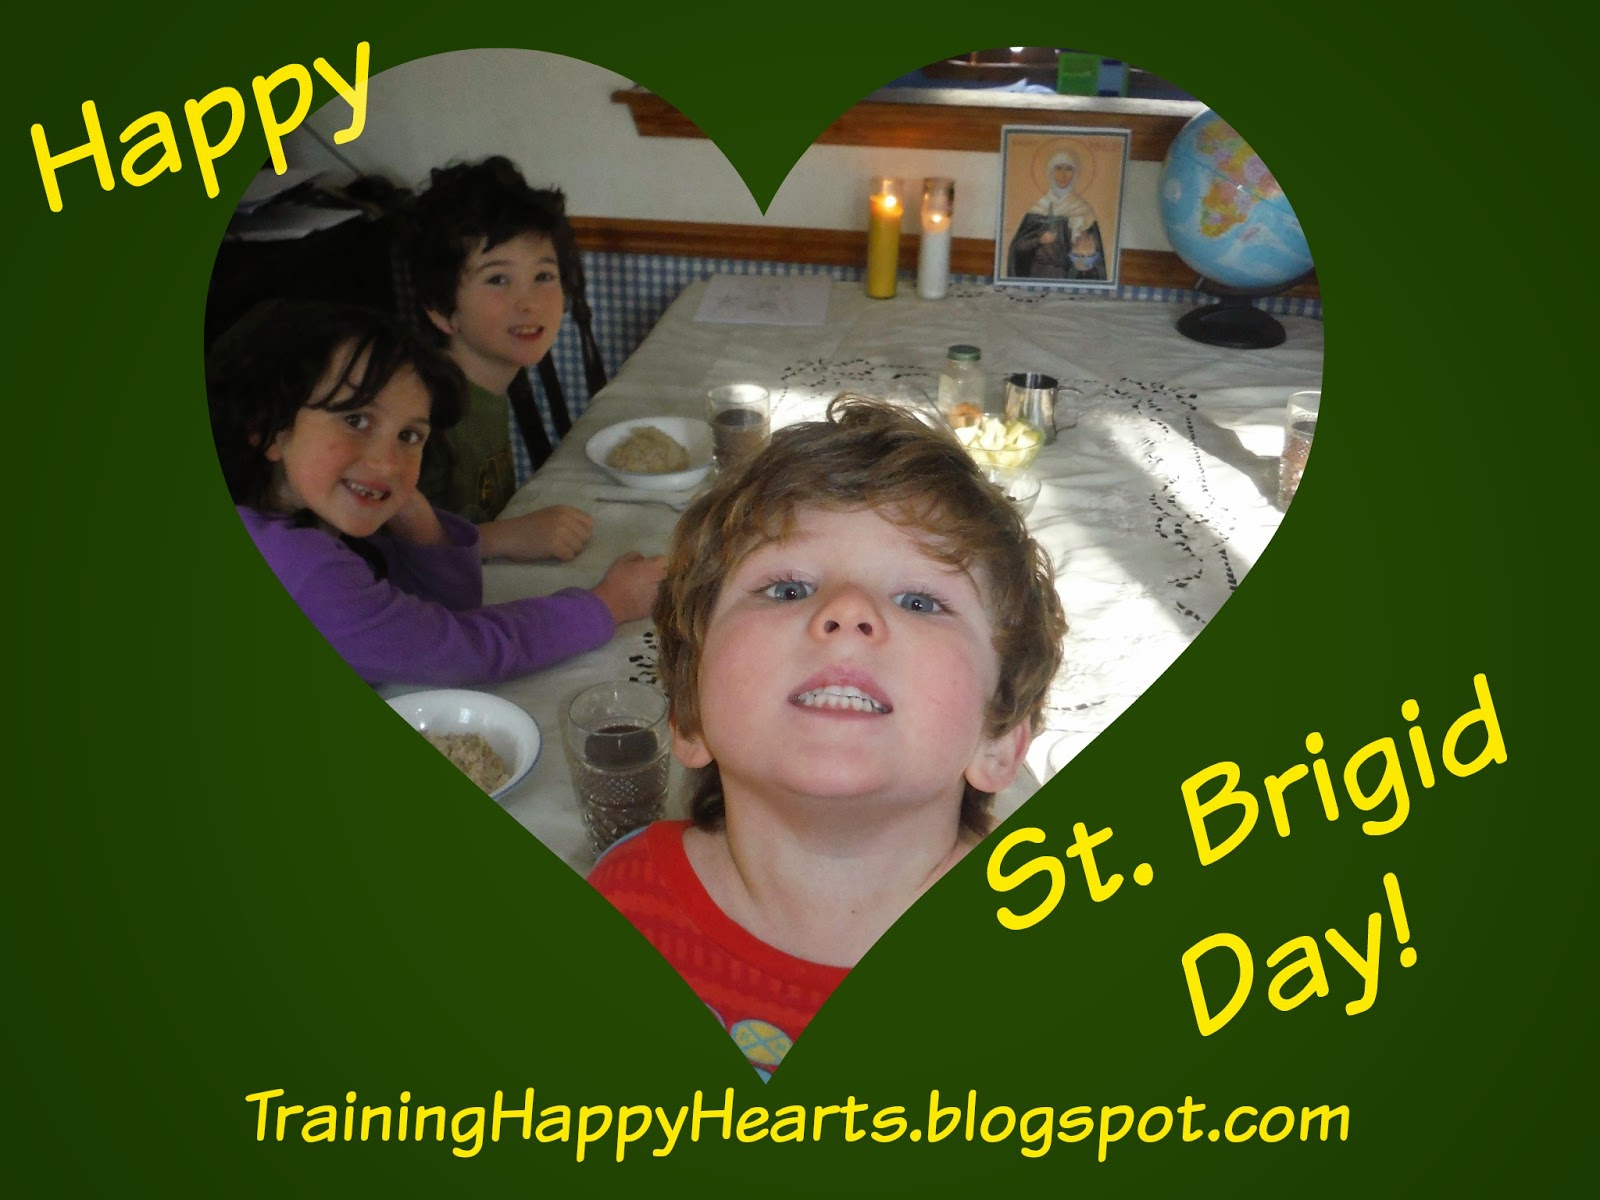 http://traininghappyhearts.blogspot.com/2015/02/celebrate-st-brigid-with-simple-stories.html